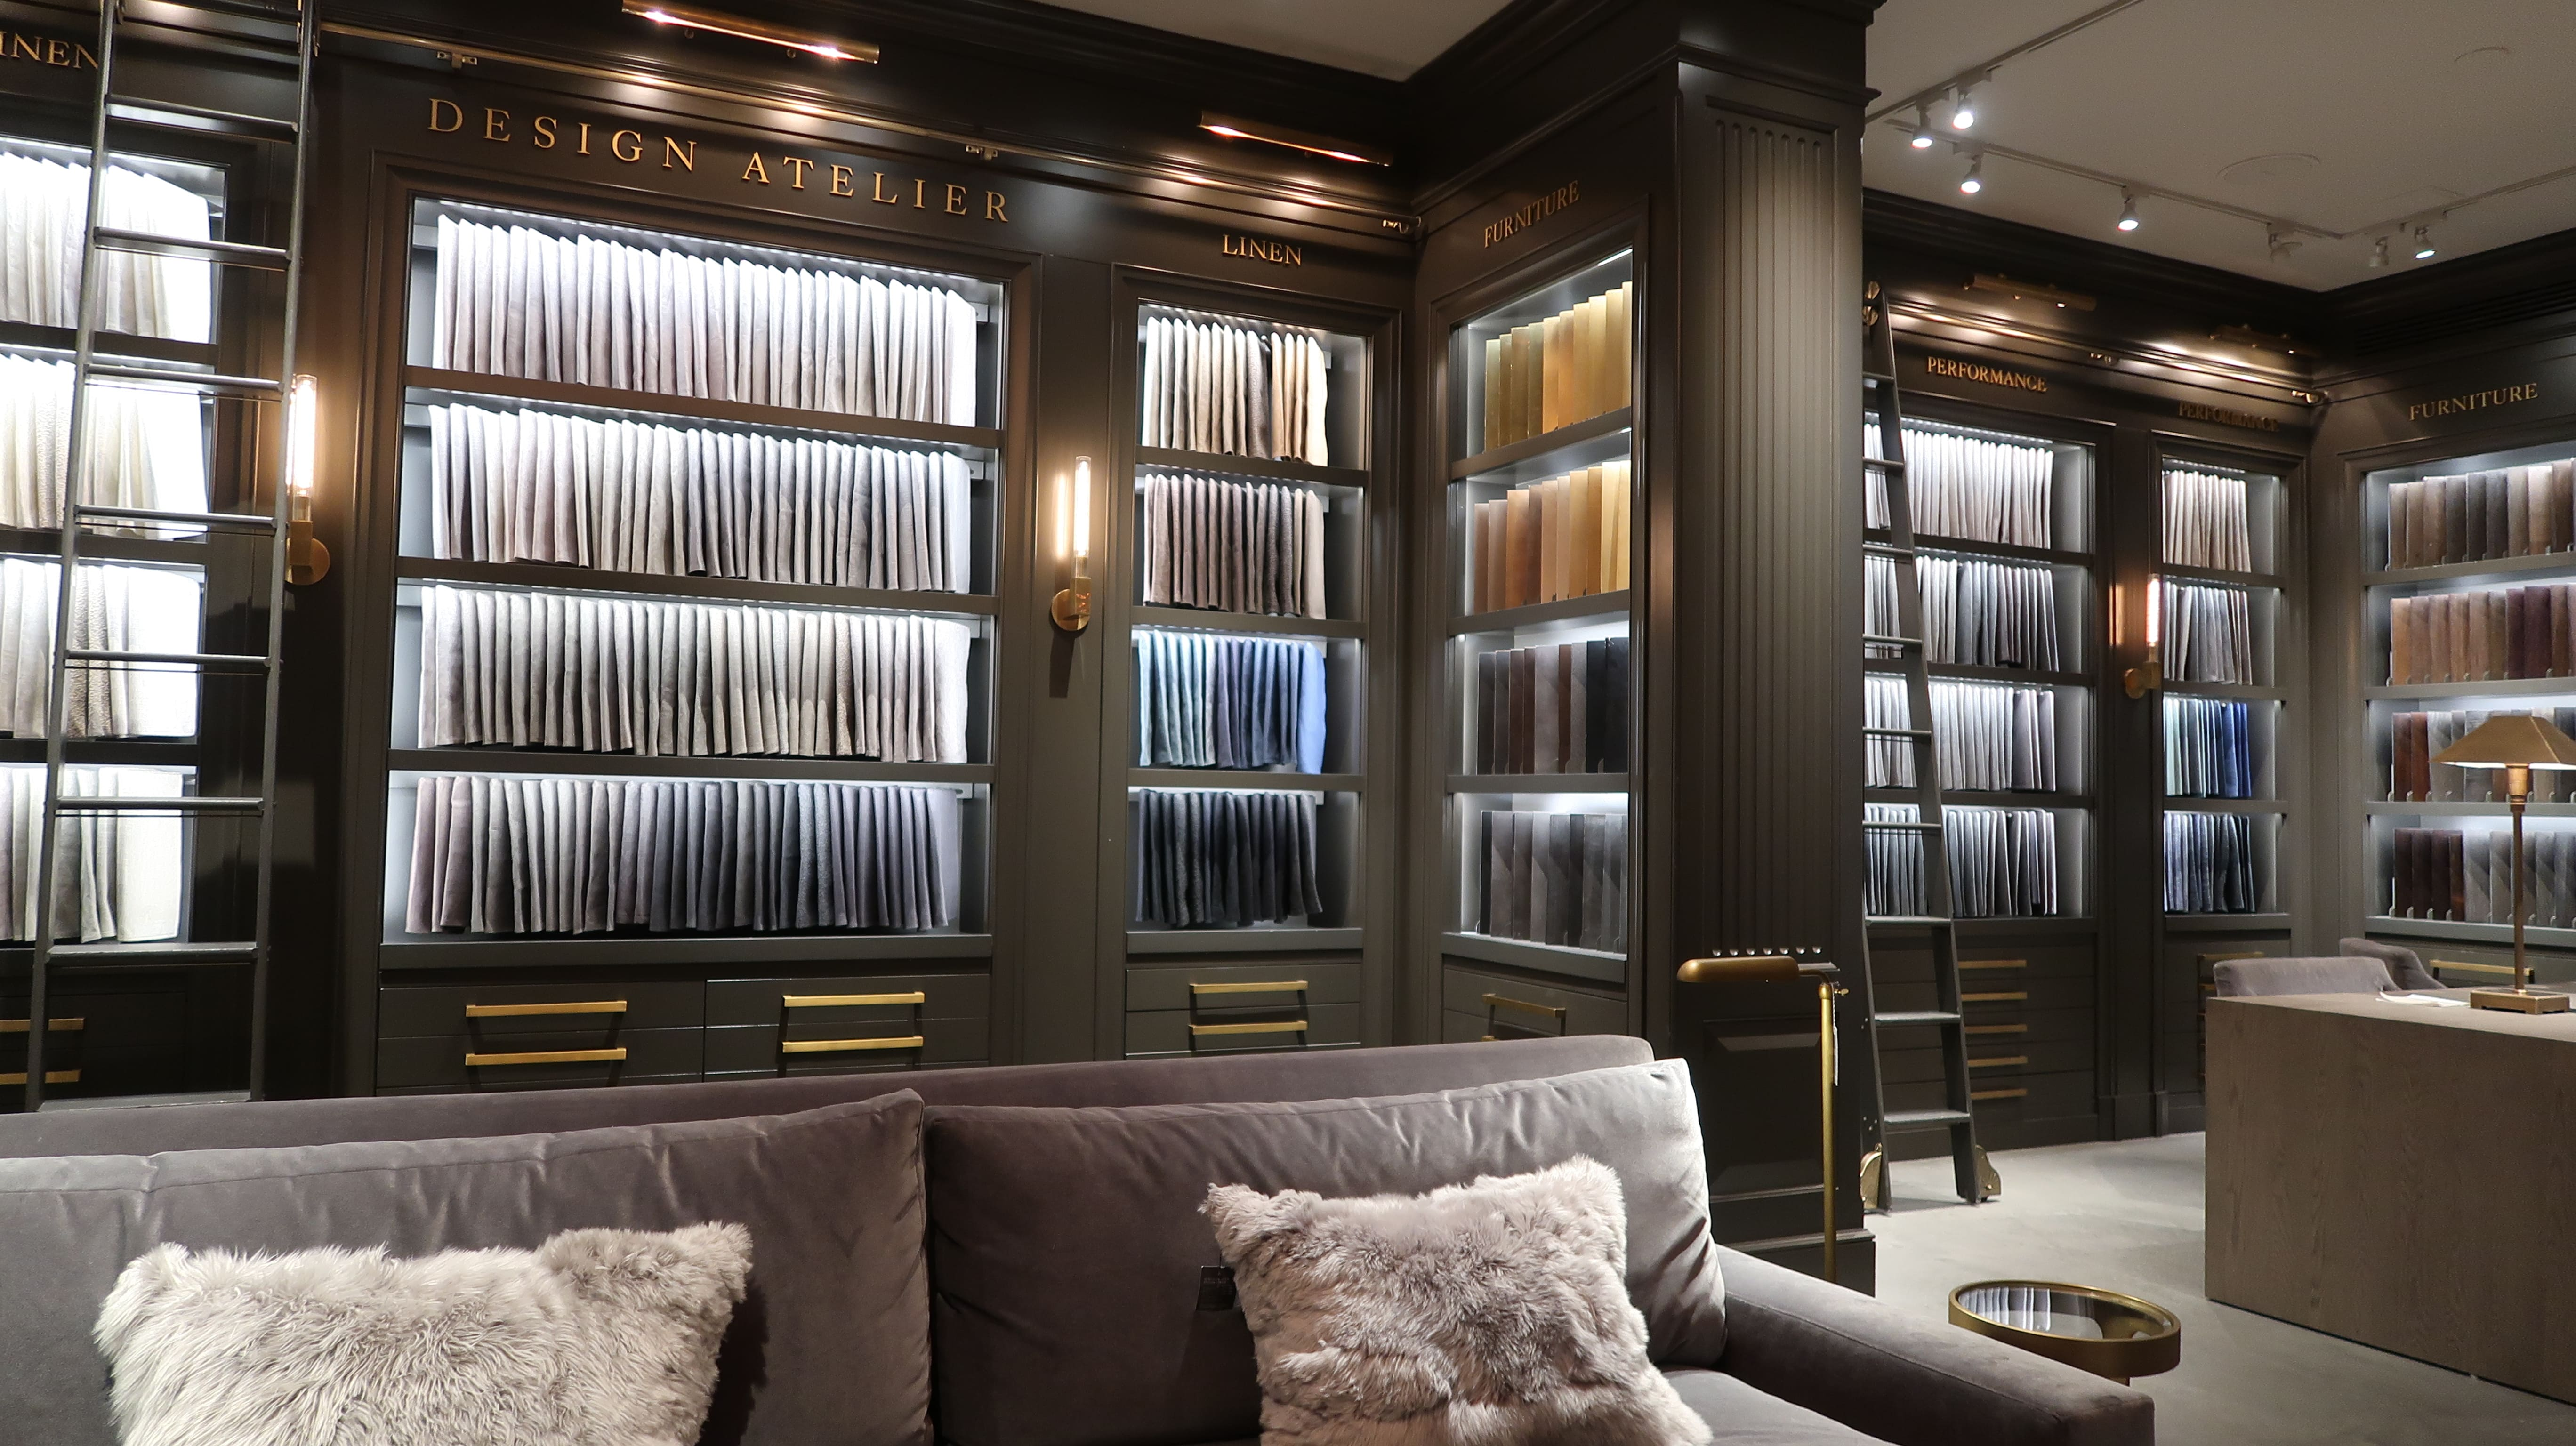 Restoration Hardware Design Atelier